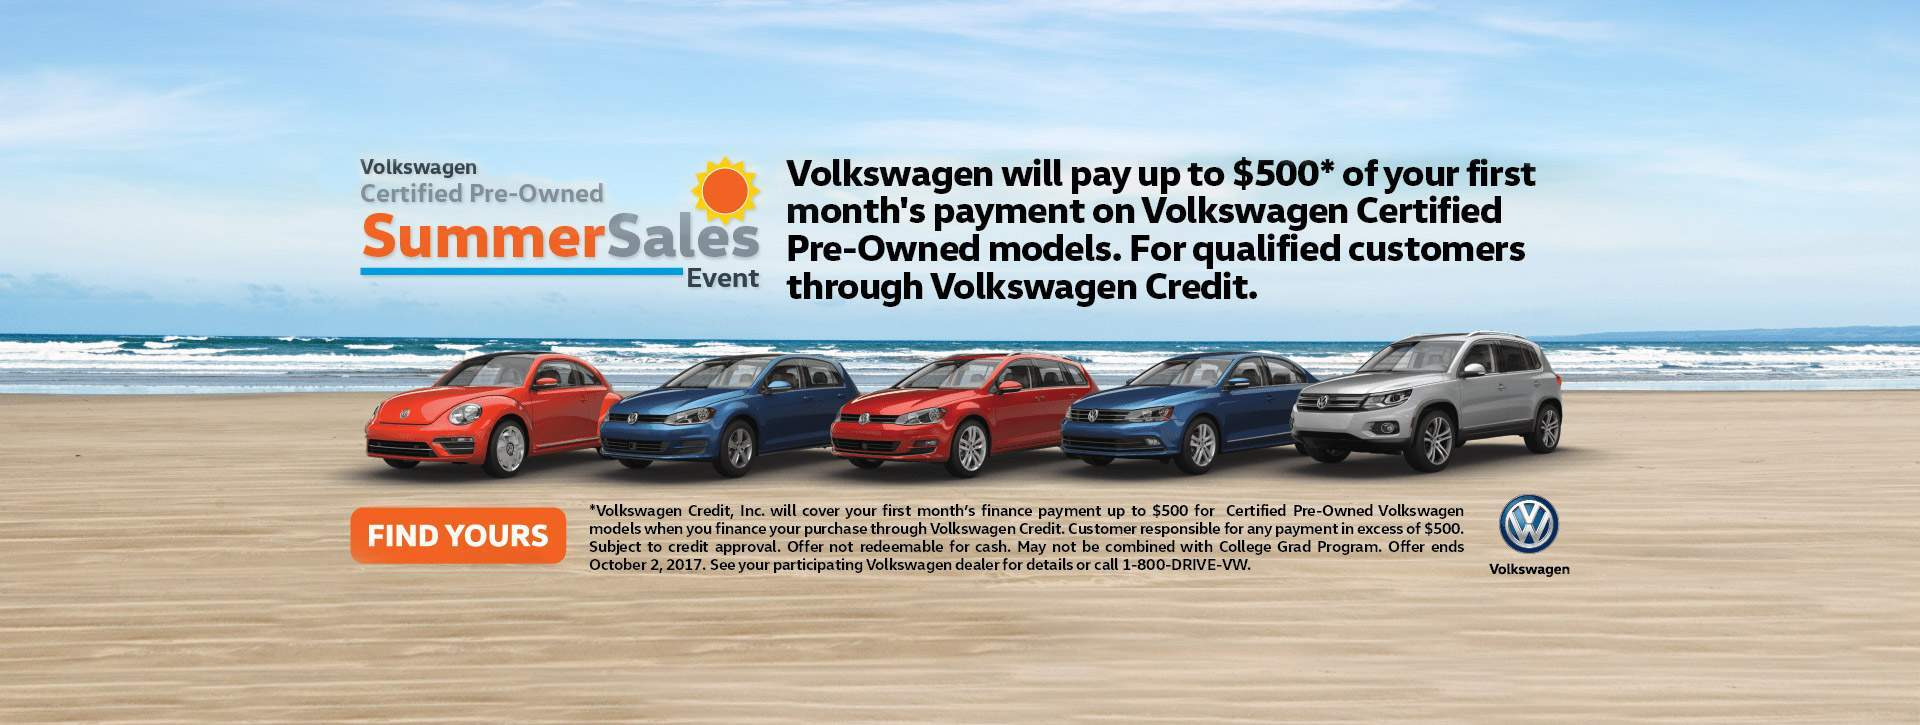 Volkswagen of Orland Park | New & Used VW Cars near Chicago, IL